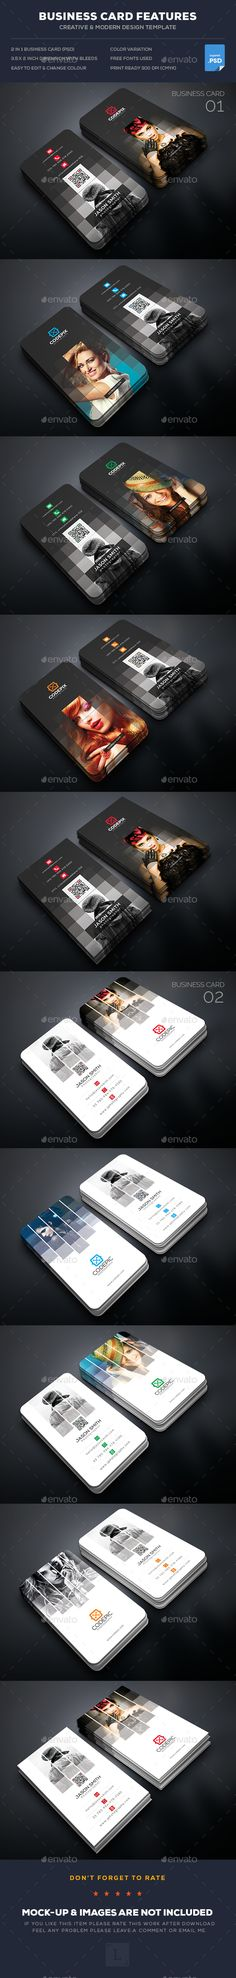 Photography Business Card Bundle - Business Cards Print Templates Download here : https://graphicriver.net/item/photography-business-card-bundle/18035038?s_rank=146&ref=Al-fatih